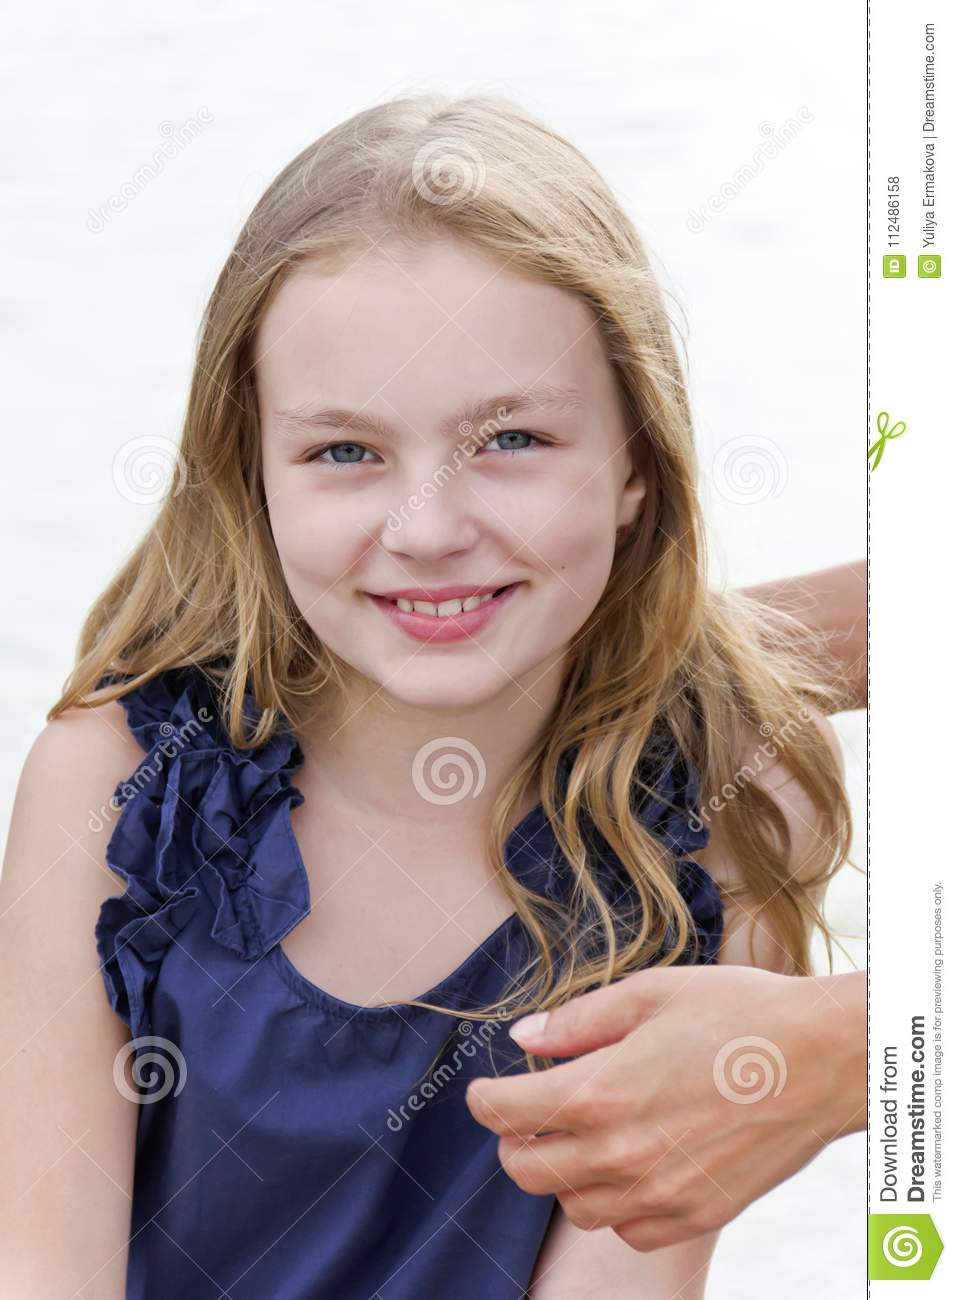 Girl with long blond hair and mother hands